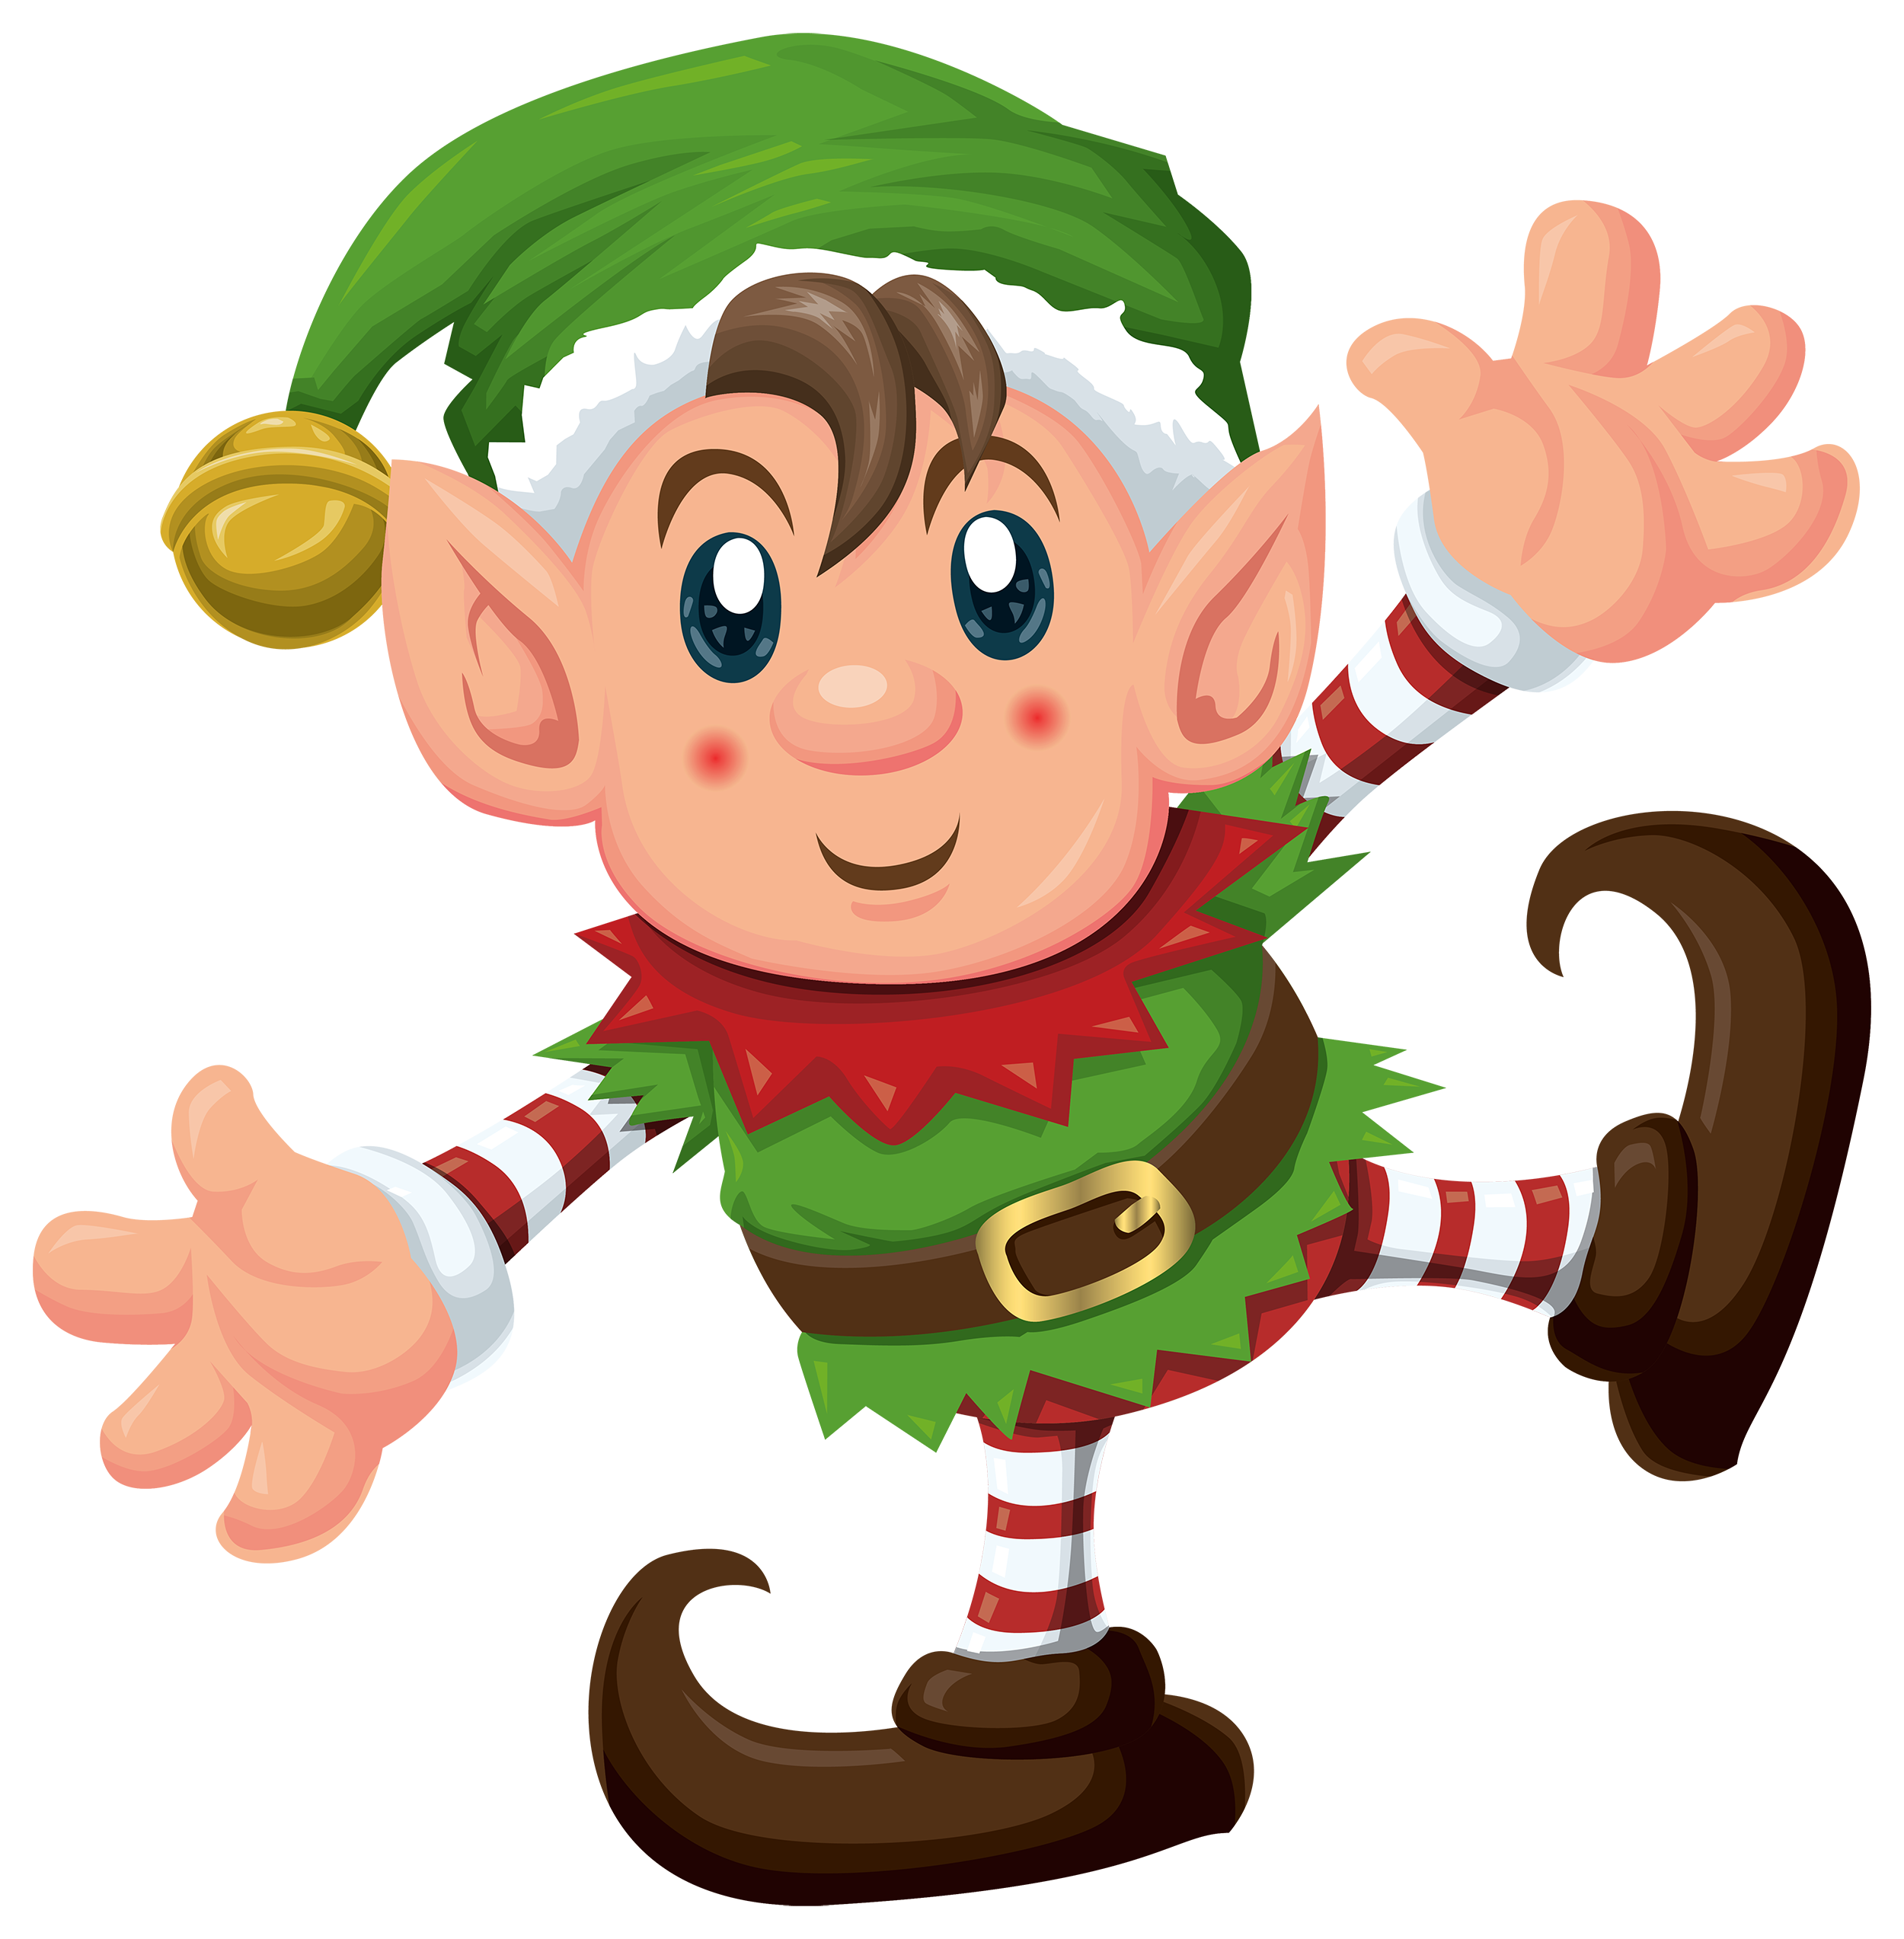 Clipart elves clip transparent Pin by !r3n3 dung@n on XMAS | Elf images, Christmas elf, Elf clipart clip transparent